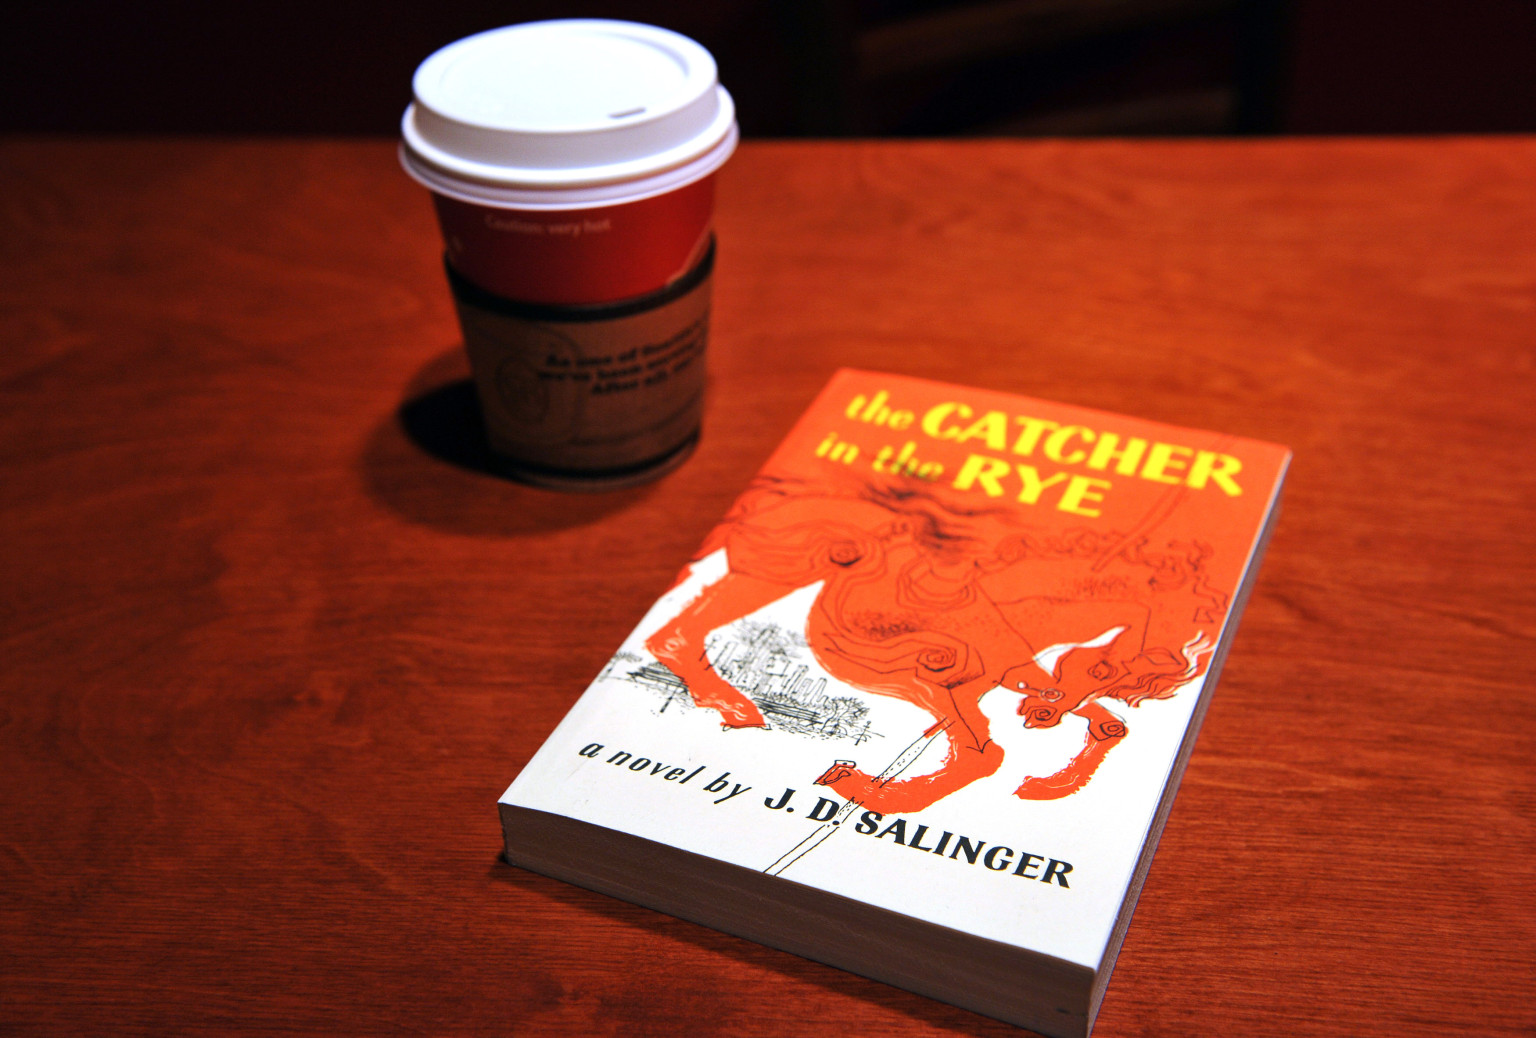 holden caulfield diagnosis essay